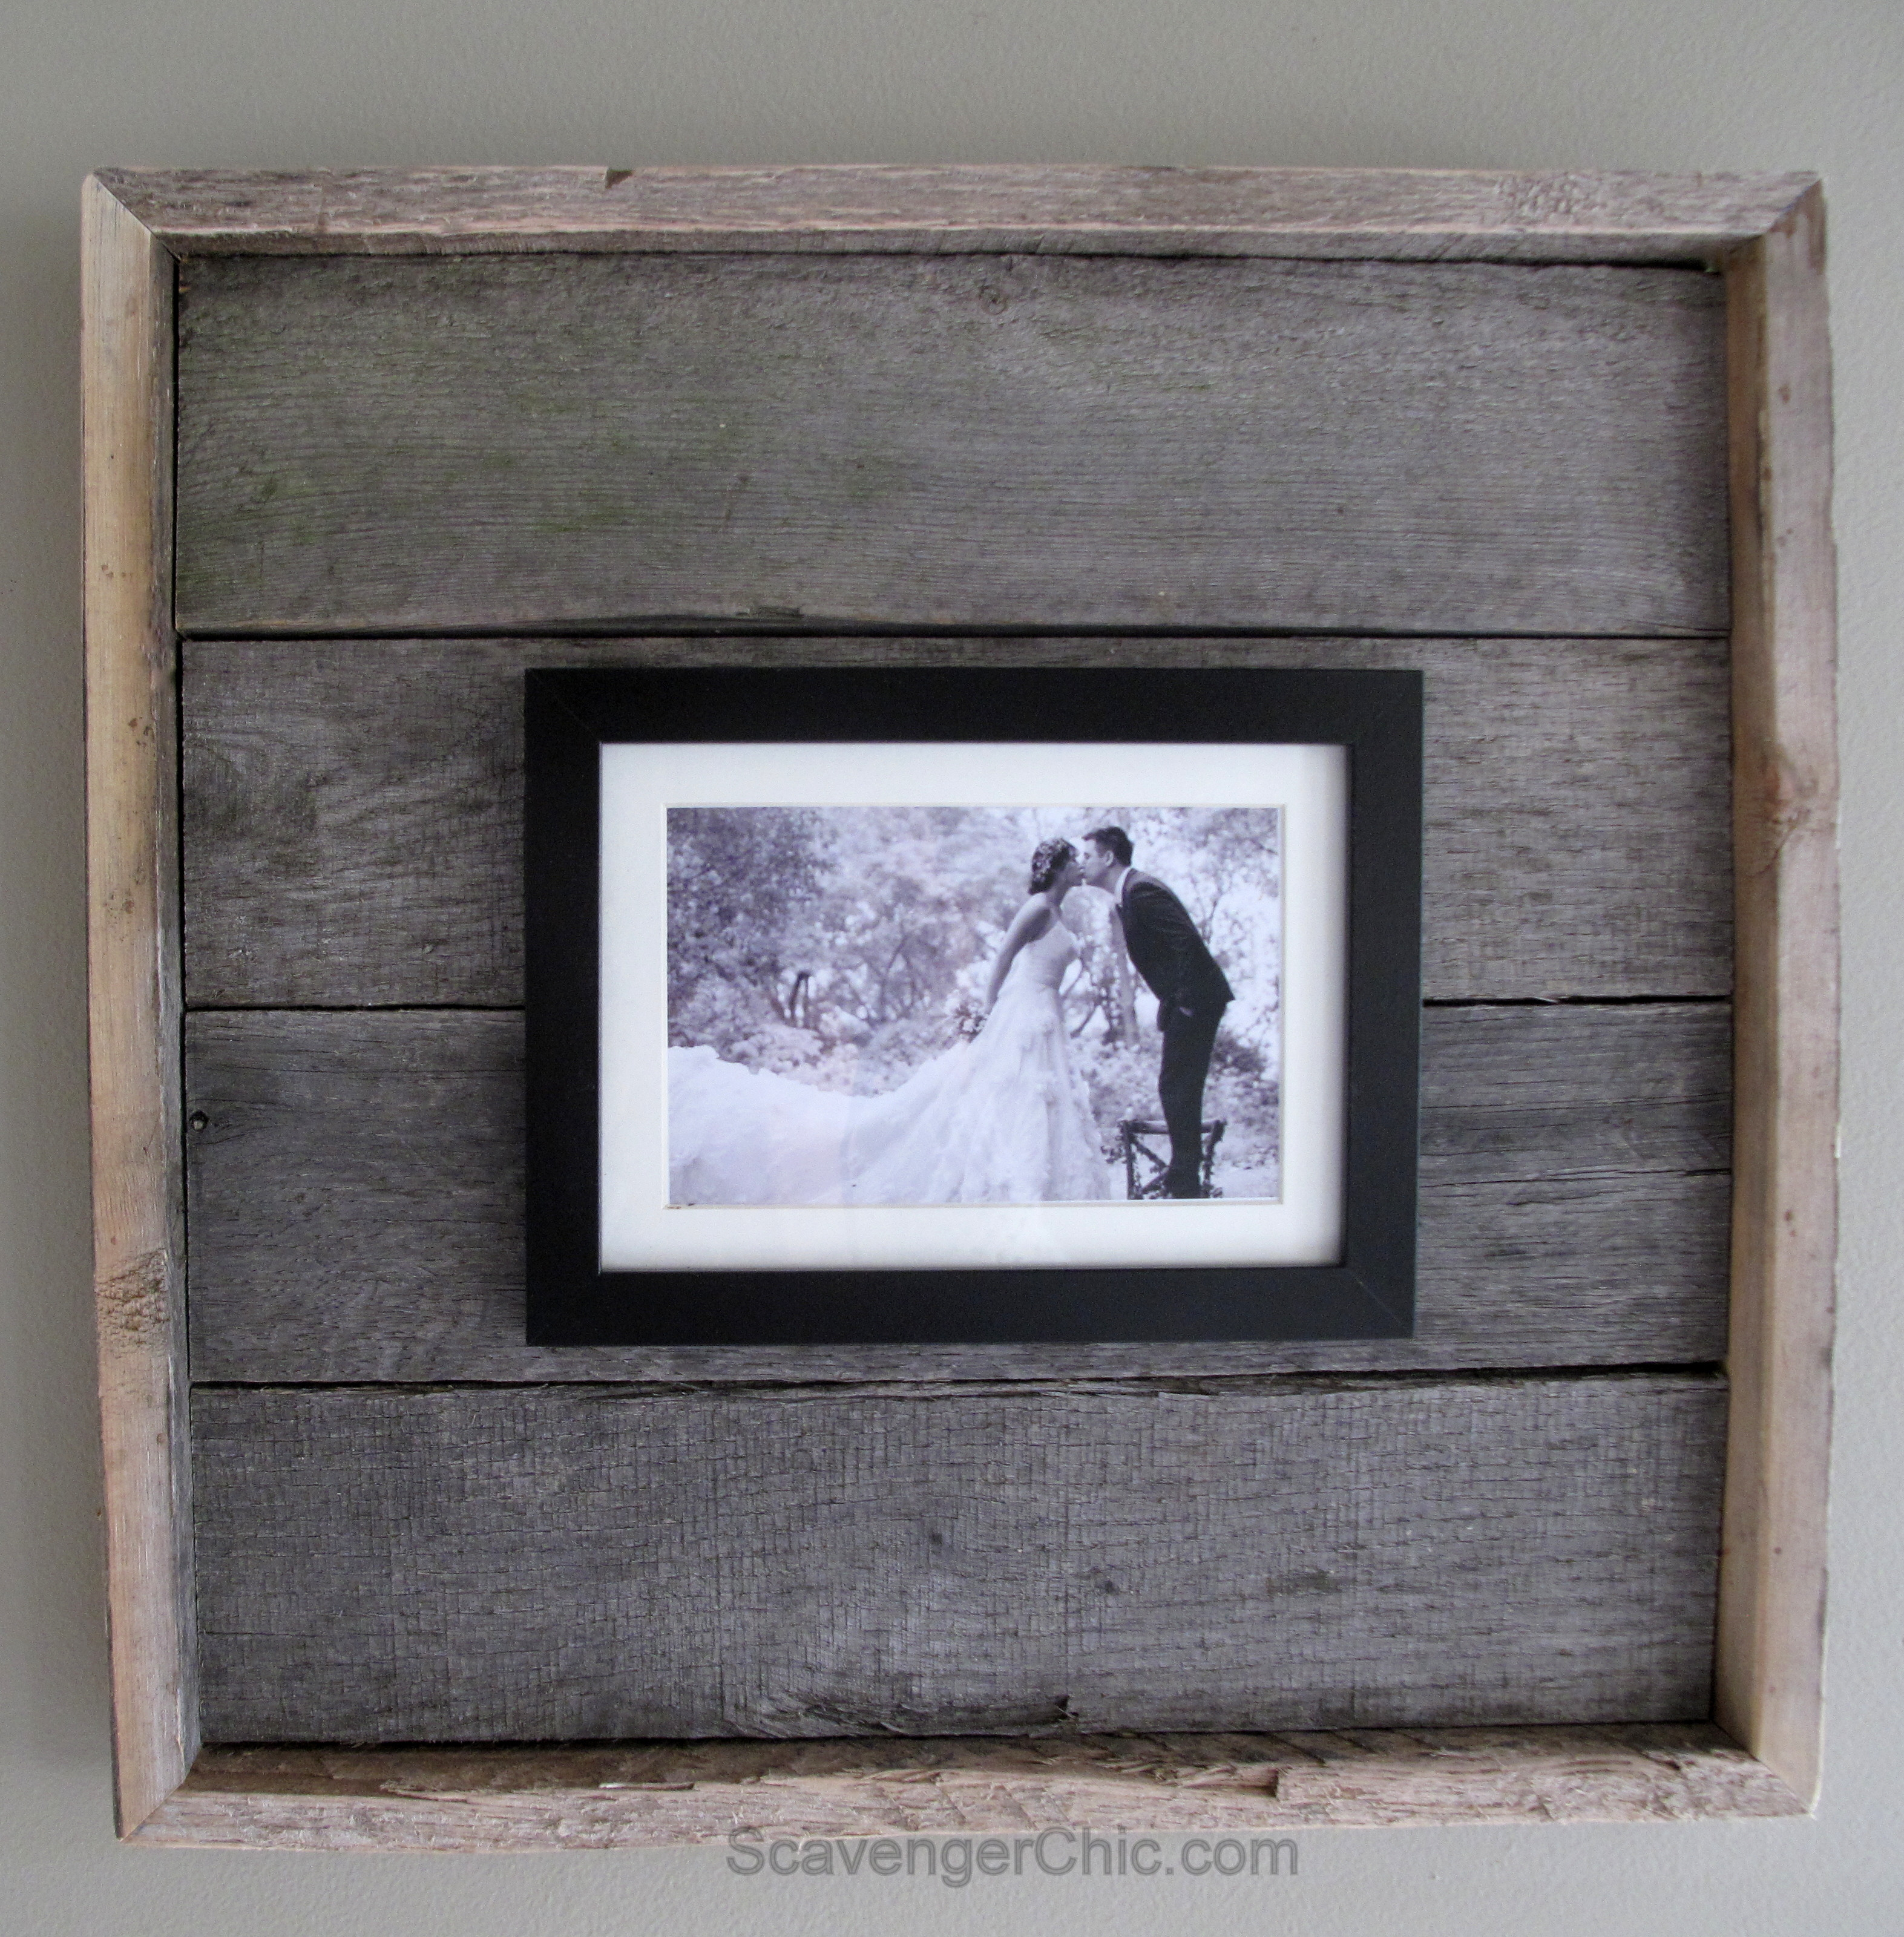 Best ideas about Wood Picture Frames DIY . Save or Pin Easy diy Pallet Wood Frame 013 – Scavenger Chic Now.